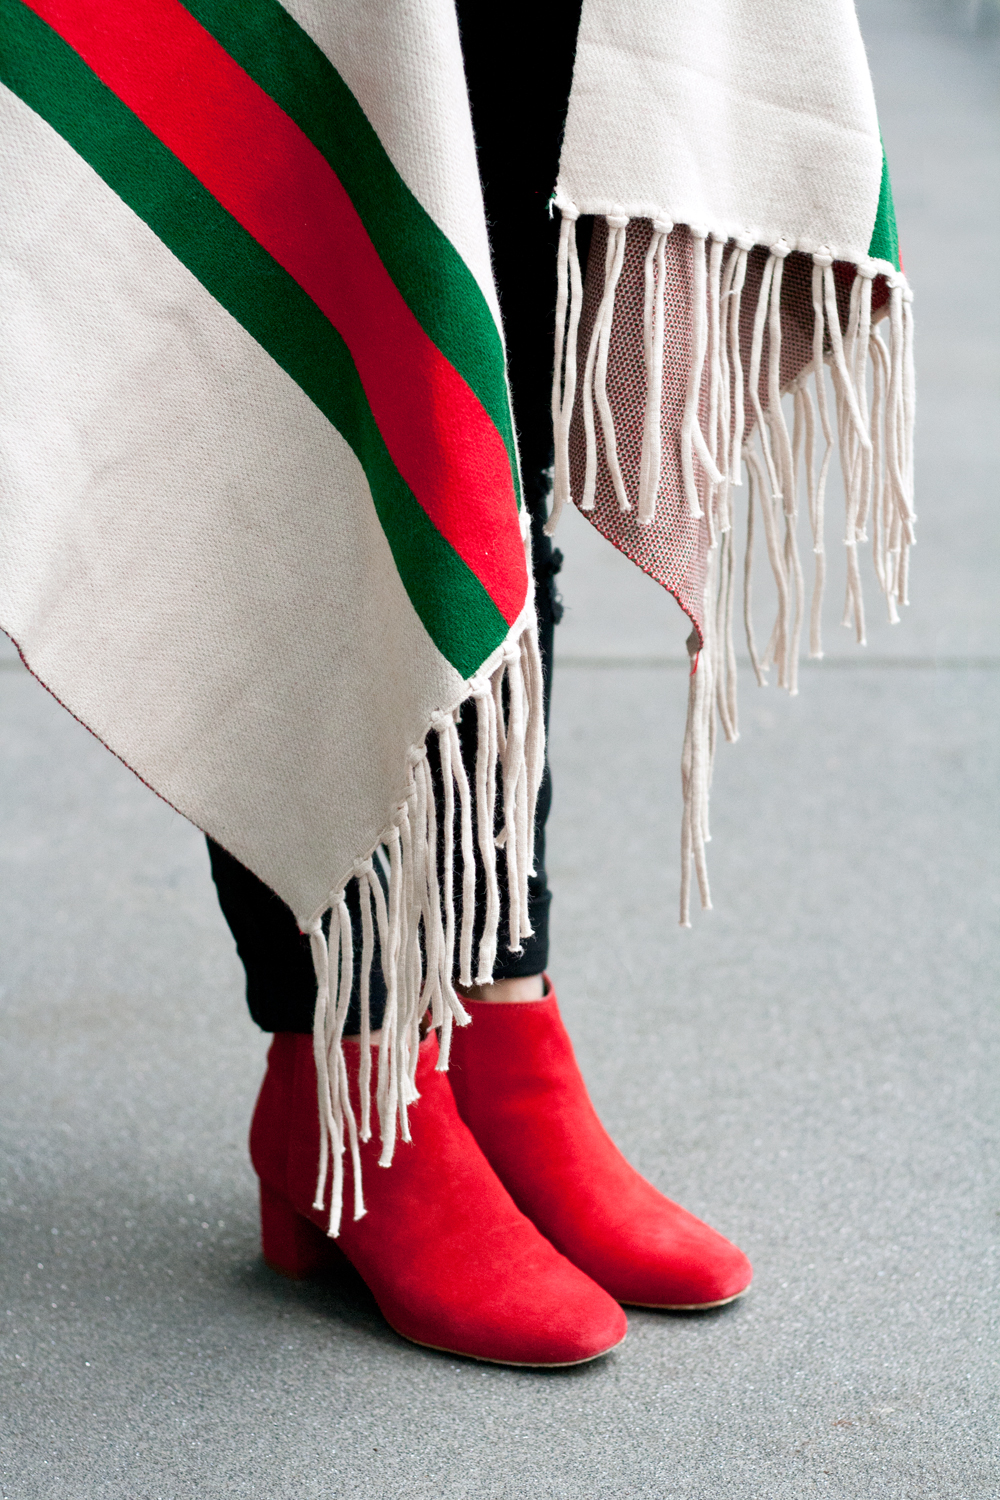 06madewell-red-suede-booties-fringes-shawl-travel-style-fashion